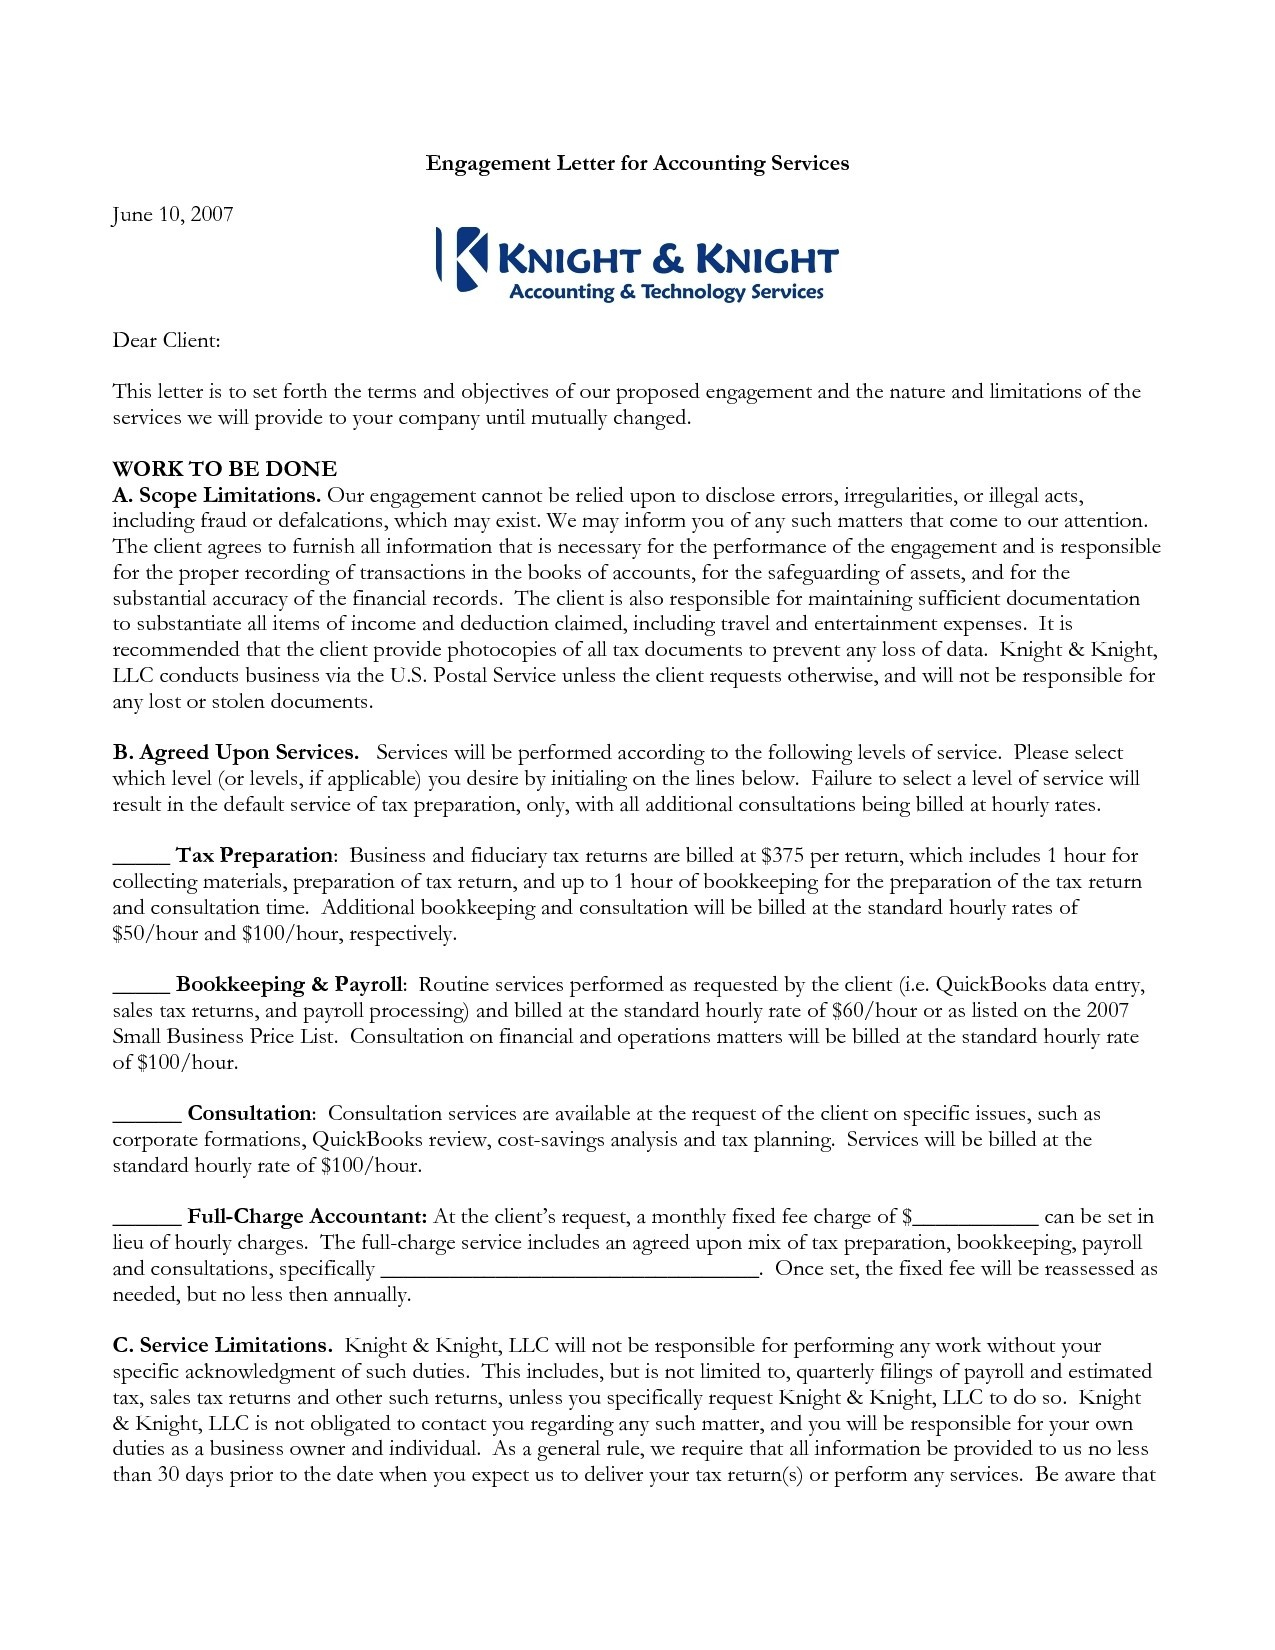 Cpa Engagement Letter Template - Cpa Engagement Letter Template